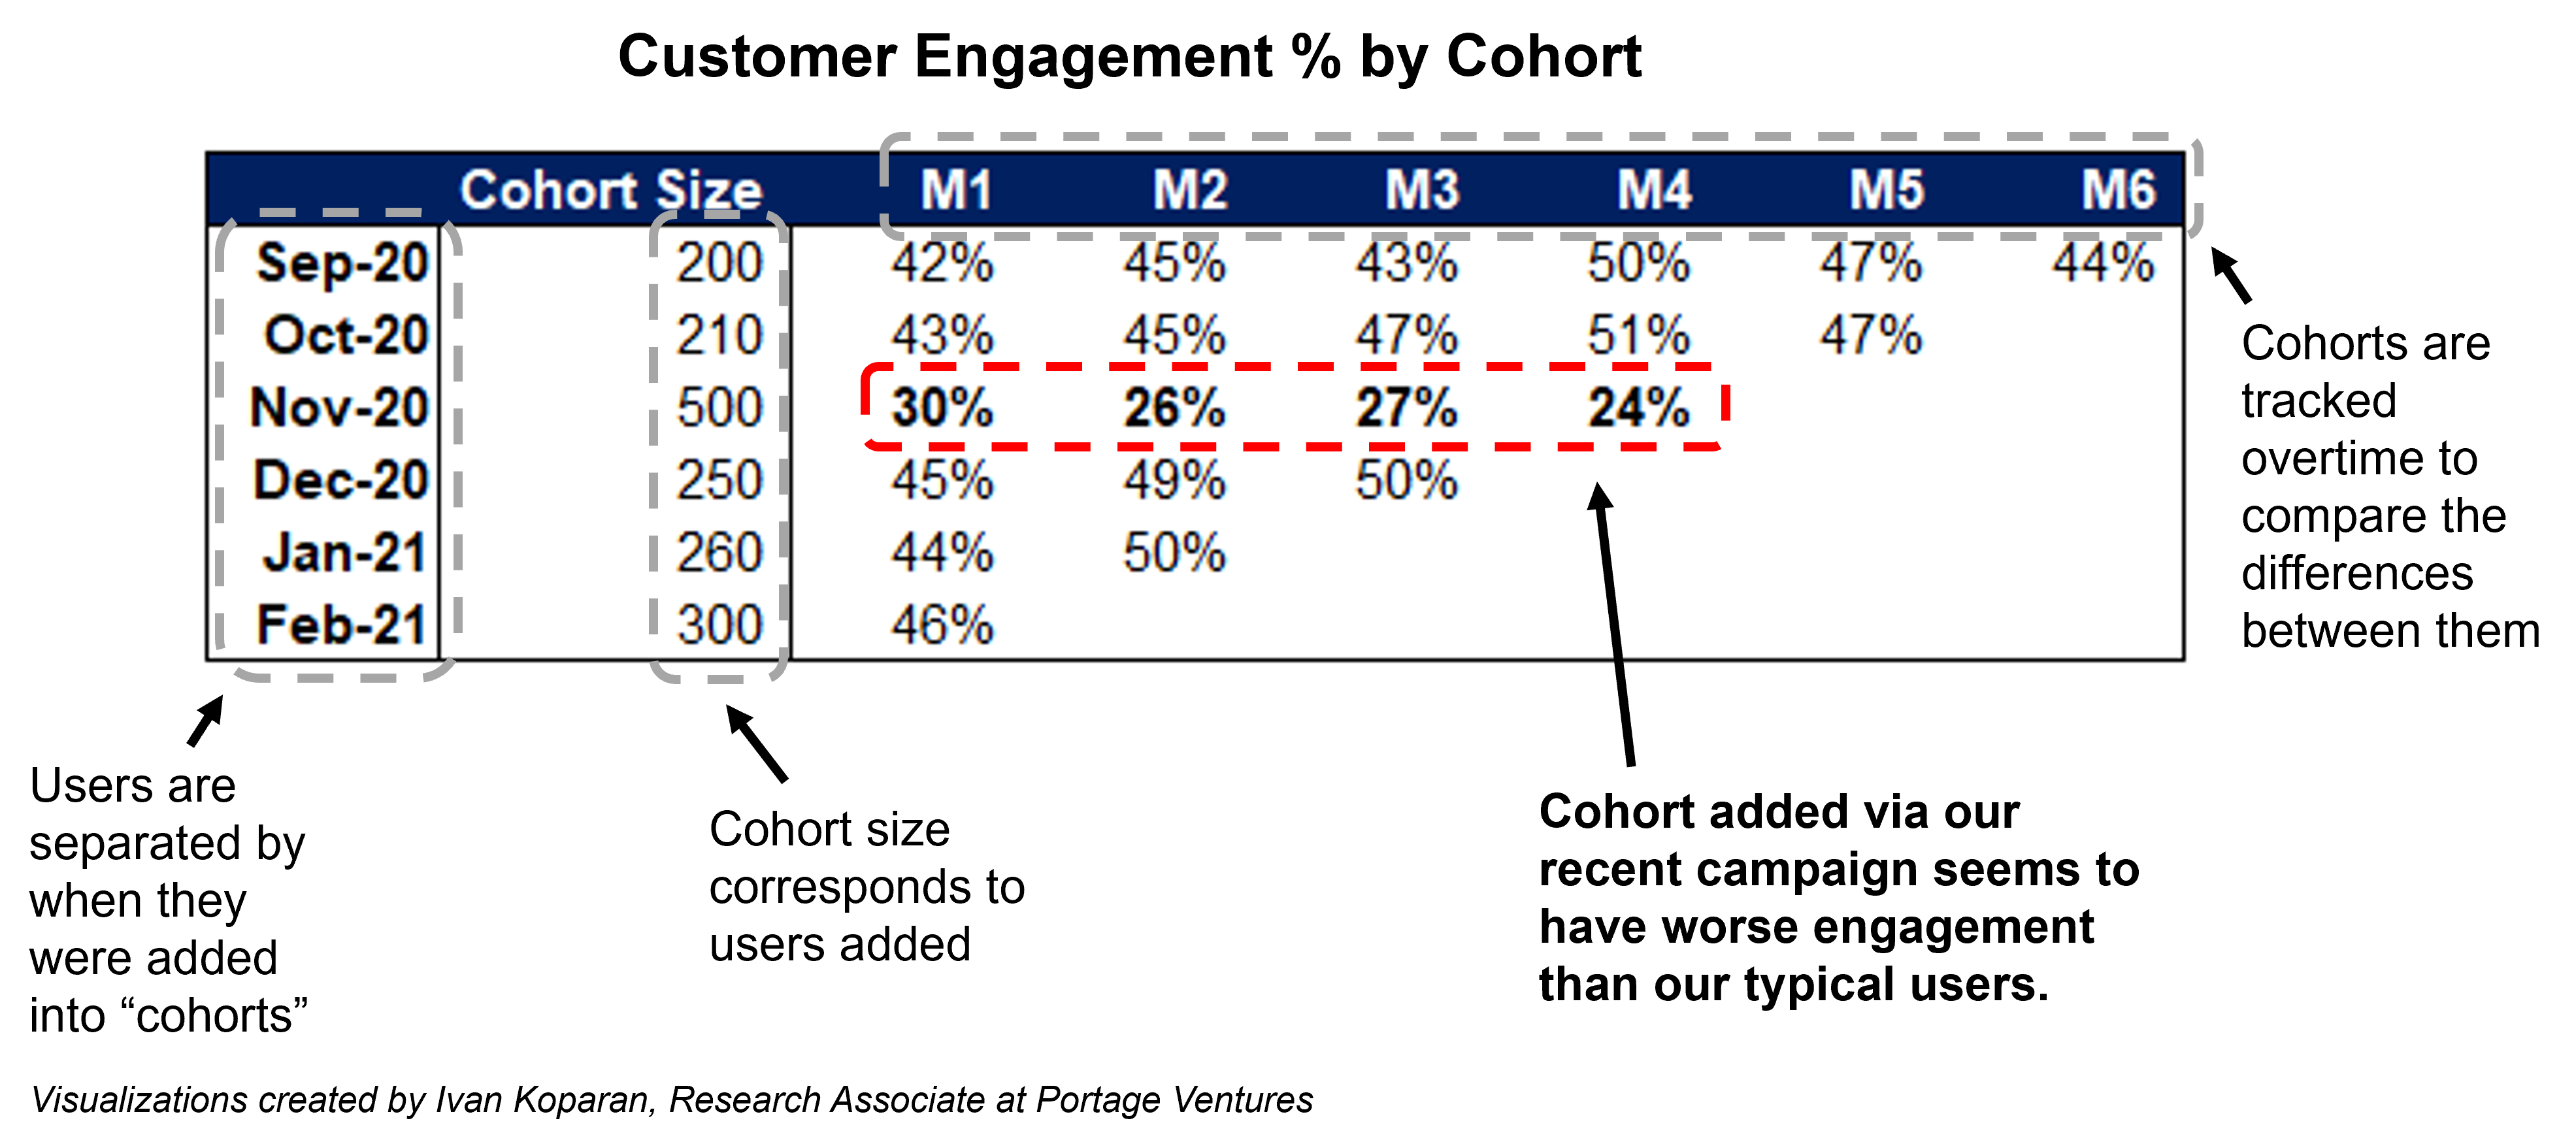 Customer engagement by cohort